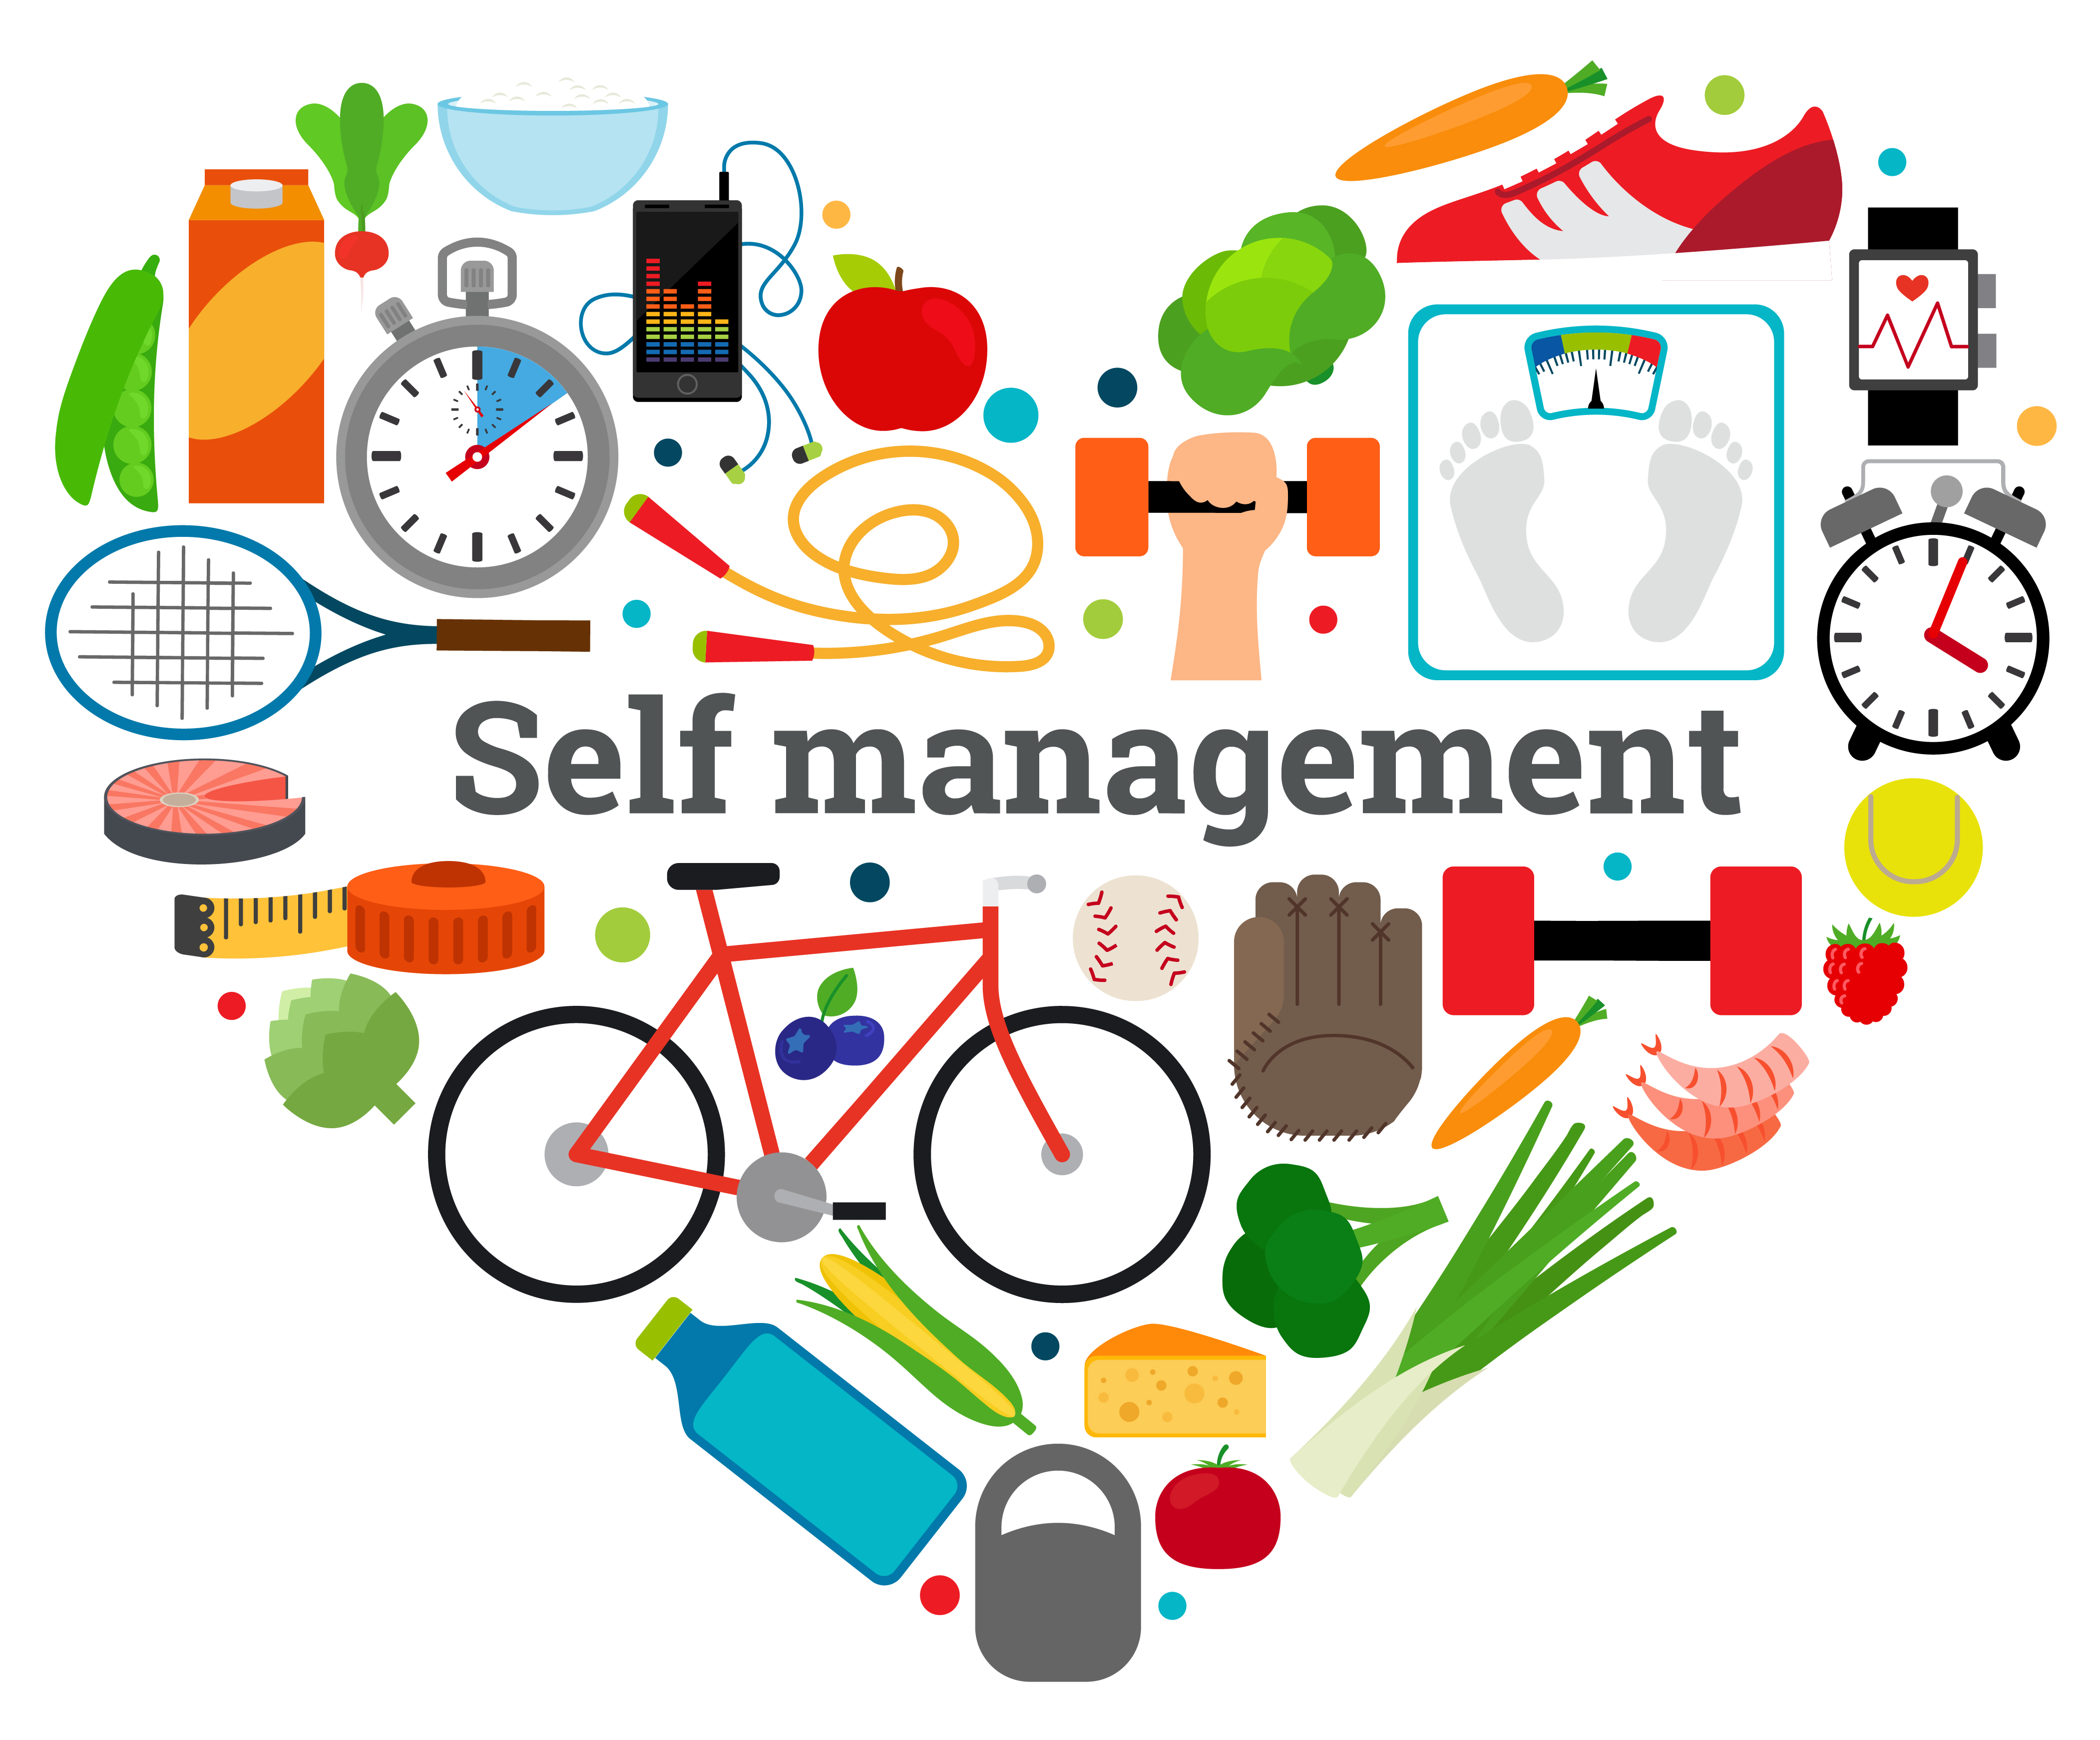 Self management clipart image transparent download Self Management Awards 2019 now open - Health and Social ... image transparent download